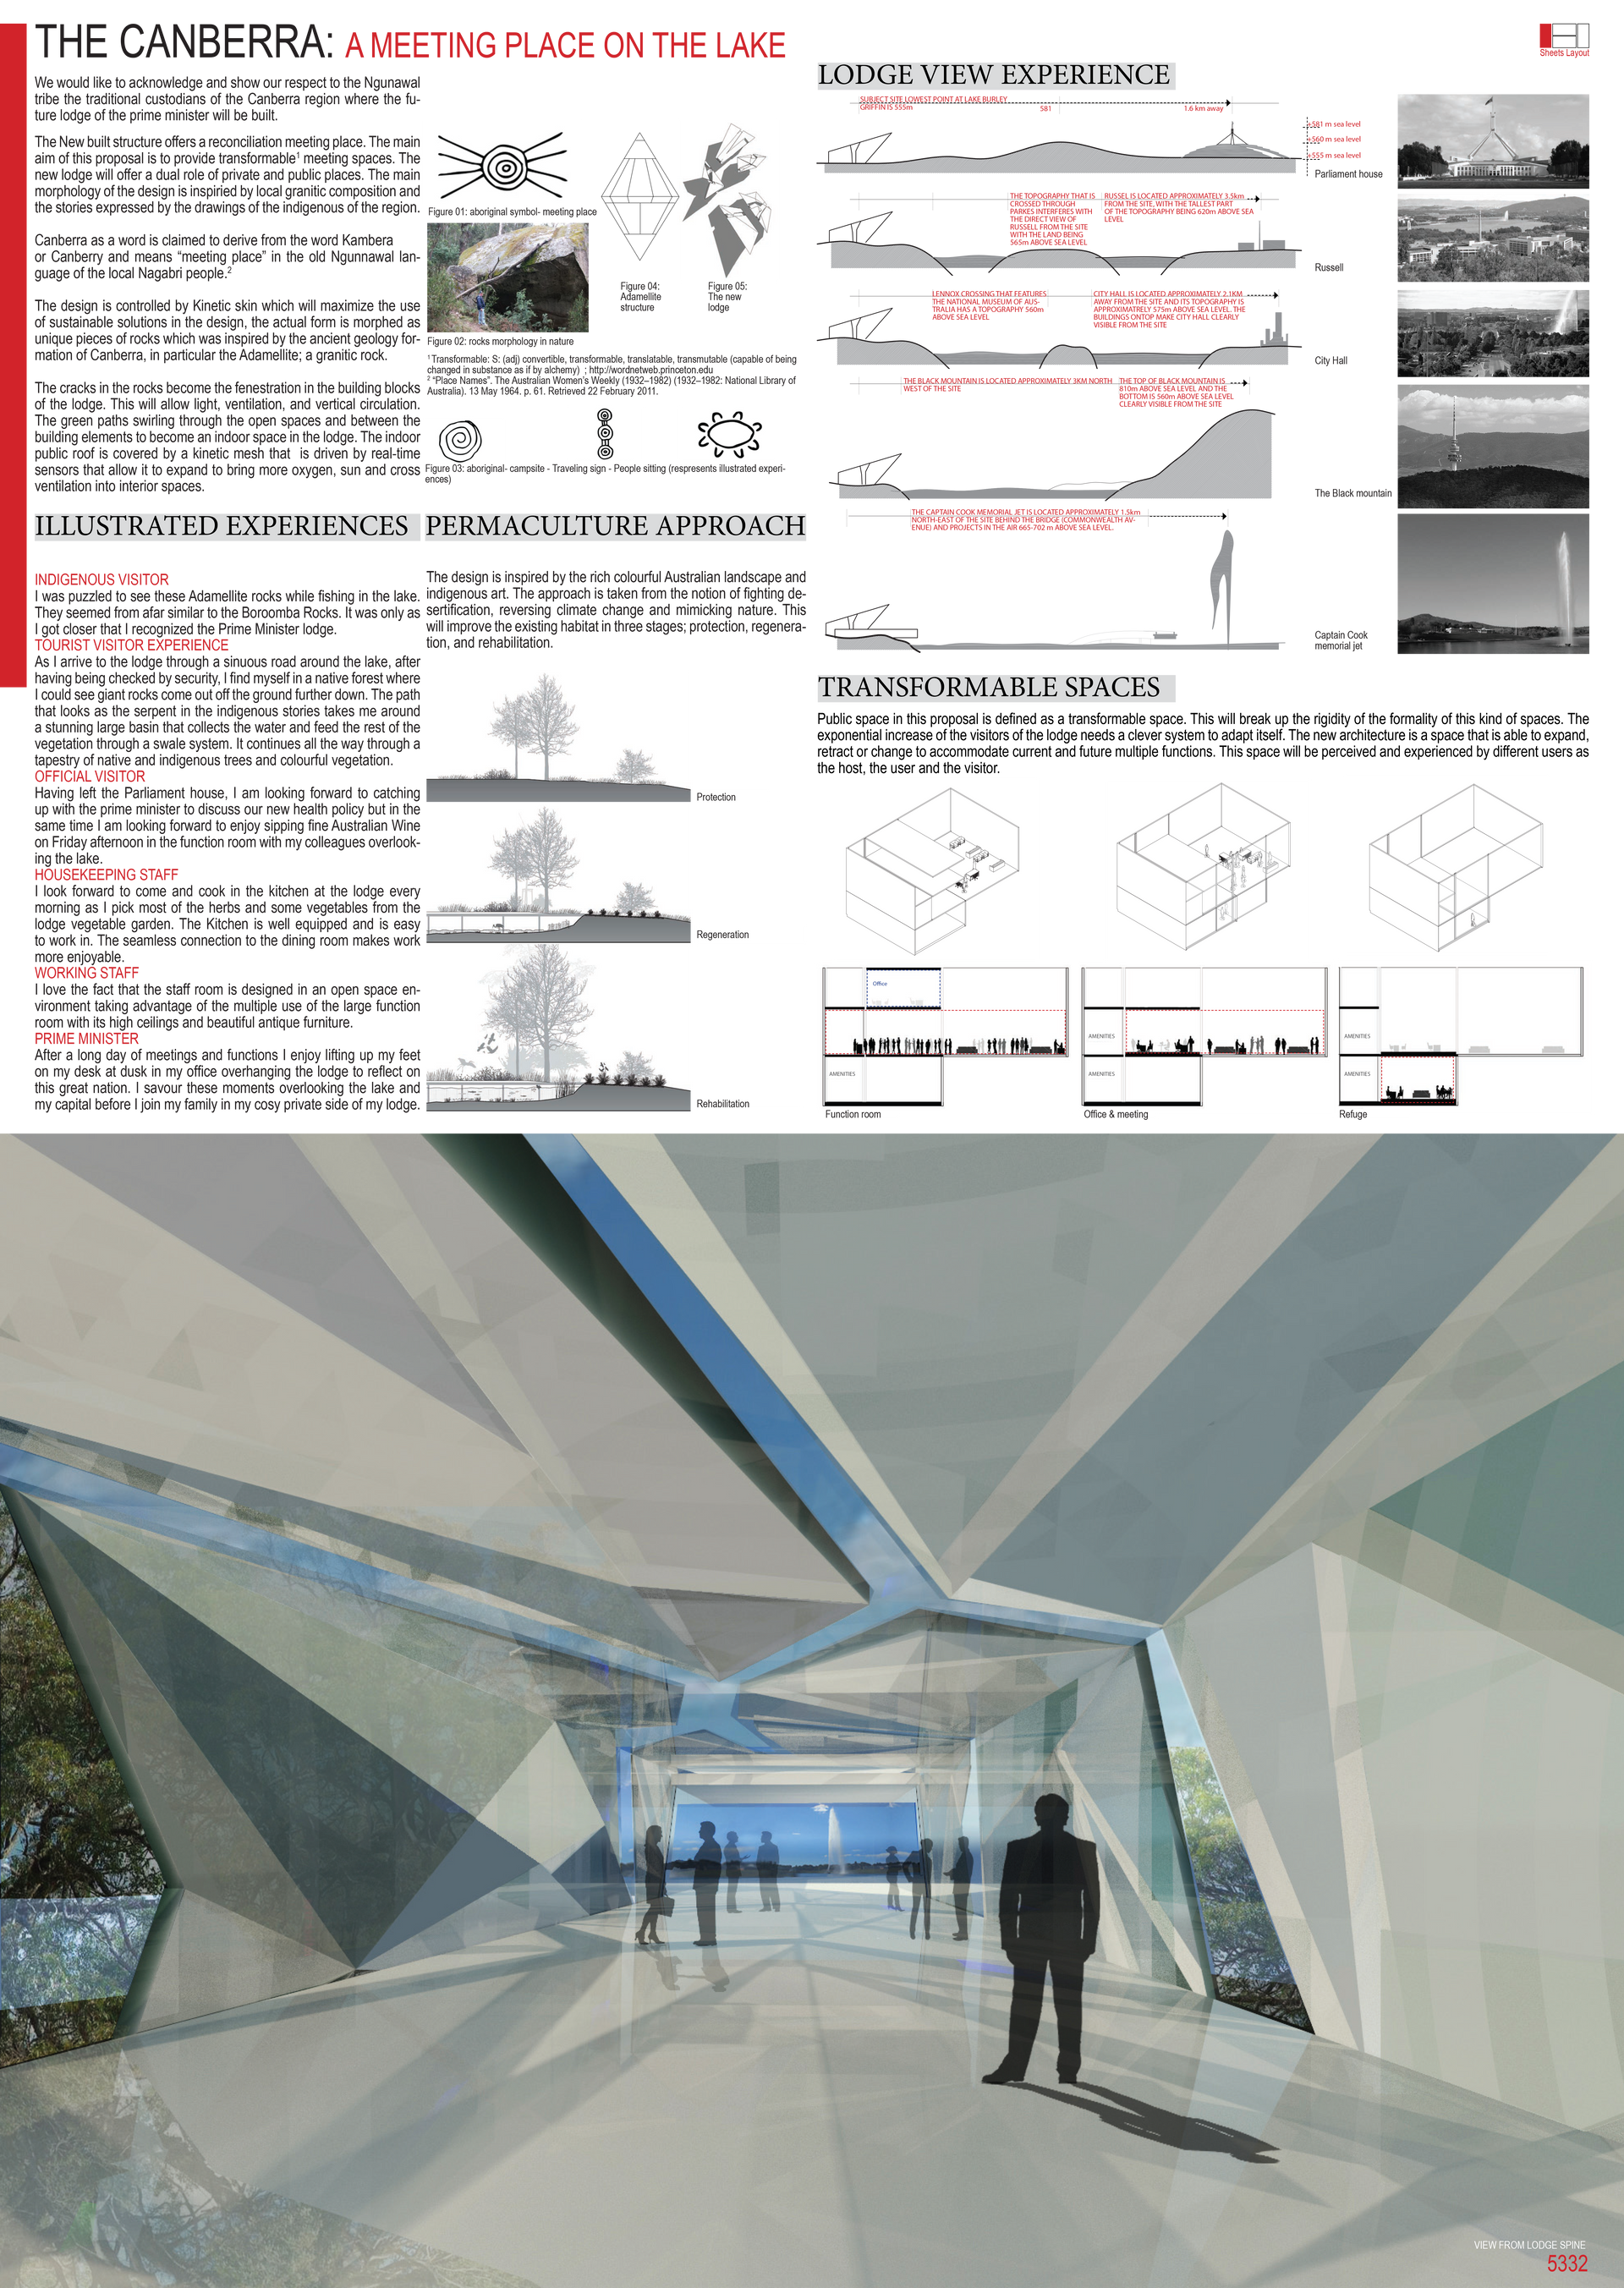 canberra p3.png